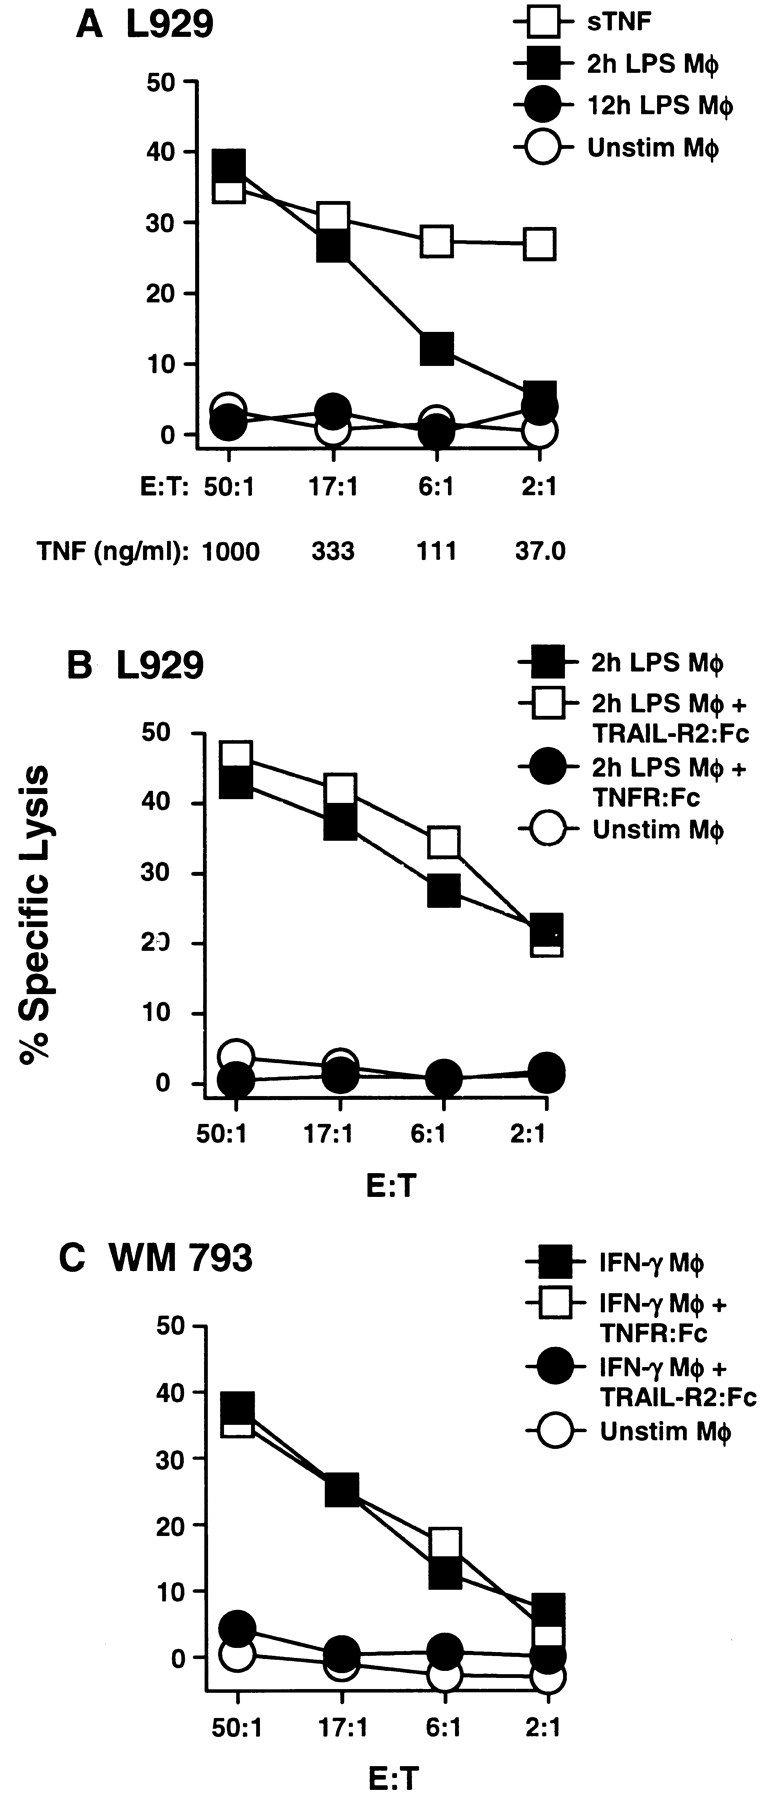 TNF-mediated apoptosis by human Mφ occurs after stimulation with LPS but not IFN-γ. (A) Mφ were incubated in the absence or presence of LPS for 2 or 12 h and then cultured for 8 h with 51 Cr-labeled L929 target cells at the indicated E/T ratios. As a positive control, soluble (s)TNF was added to targets cells at the indicated concentrations. (B) Inclusion of TNFR: Fc (20 μg/ml) to 2-h LPS-stimulated Mφ inhibited the killing of L929 target cells, whereas addition of TRAIL-R2:Fc (20 μg/ml) did not. (C) Killing of WM 793 tumor cells by Mφ stimulated with IFN-γ for 12 h can be inhibited by TRAIL-R2:Fc (20 μg/ml), but not TNFR:Fc (20 μg/ml). Data points represent the mean of triplicate wells, and the experiments were repeated at least three times with similar results. For clarity, SD bars were omitted from the graphs, but were